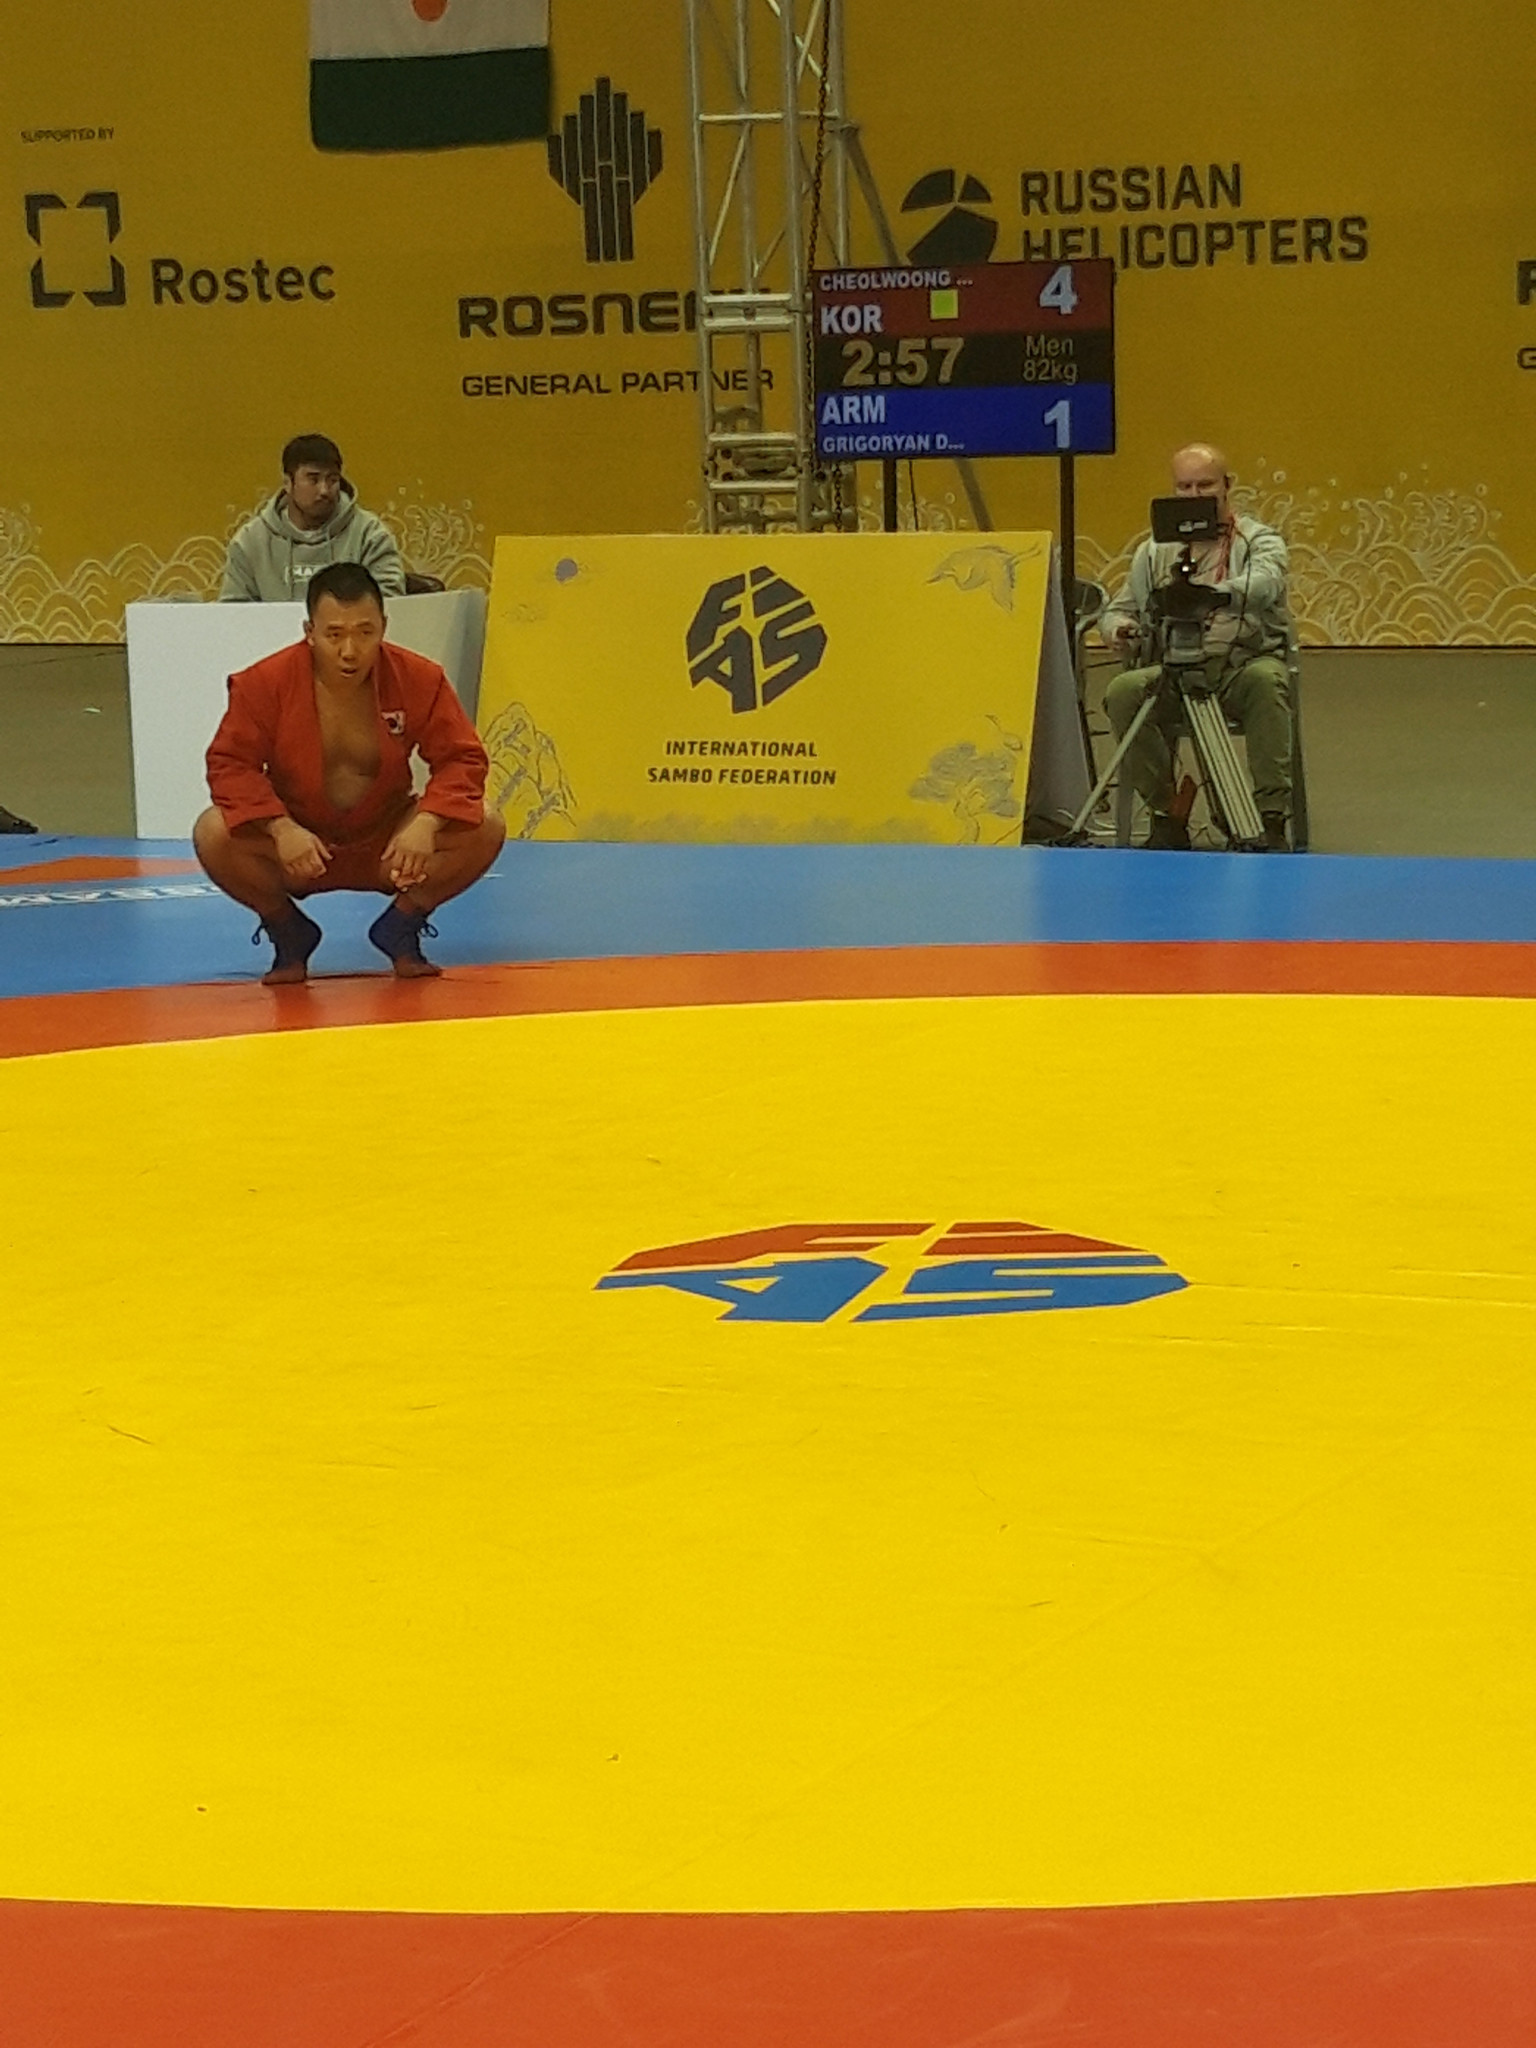 South Korean sambist Cheonwoong An awaits a refereeing call in the men's 82kg preliminary round ©ITG